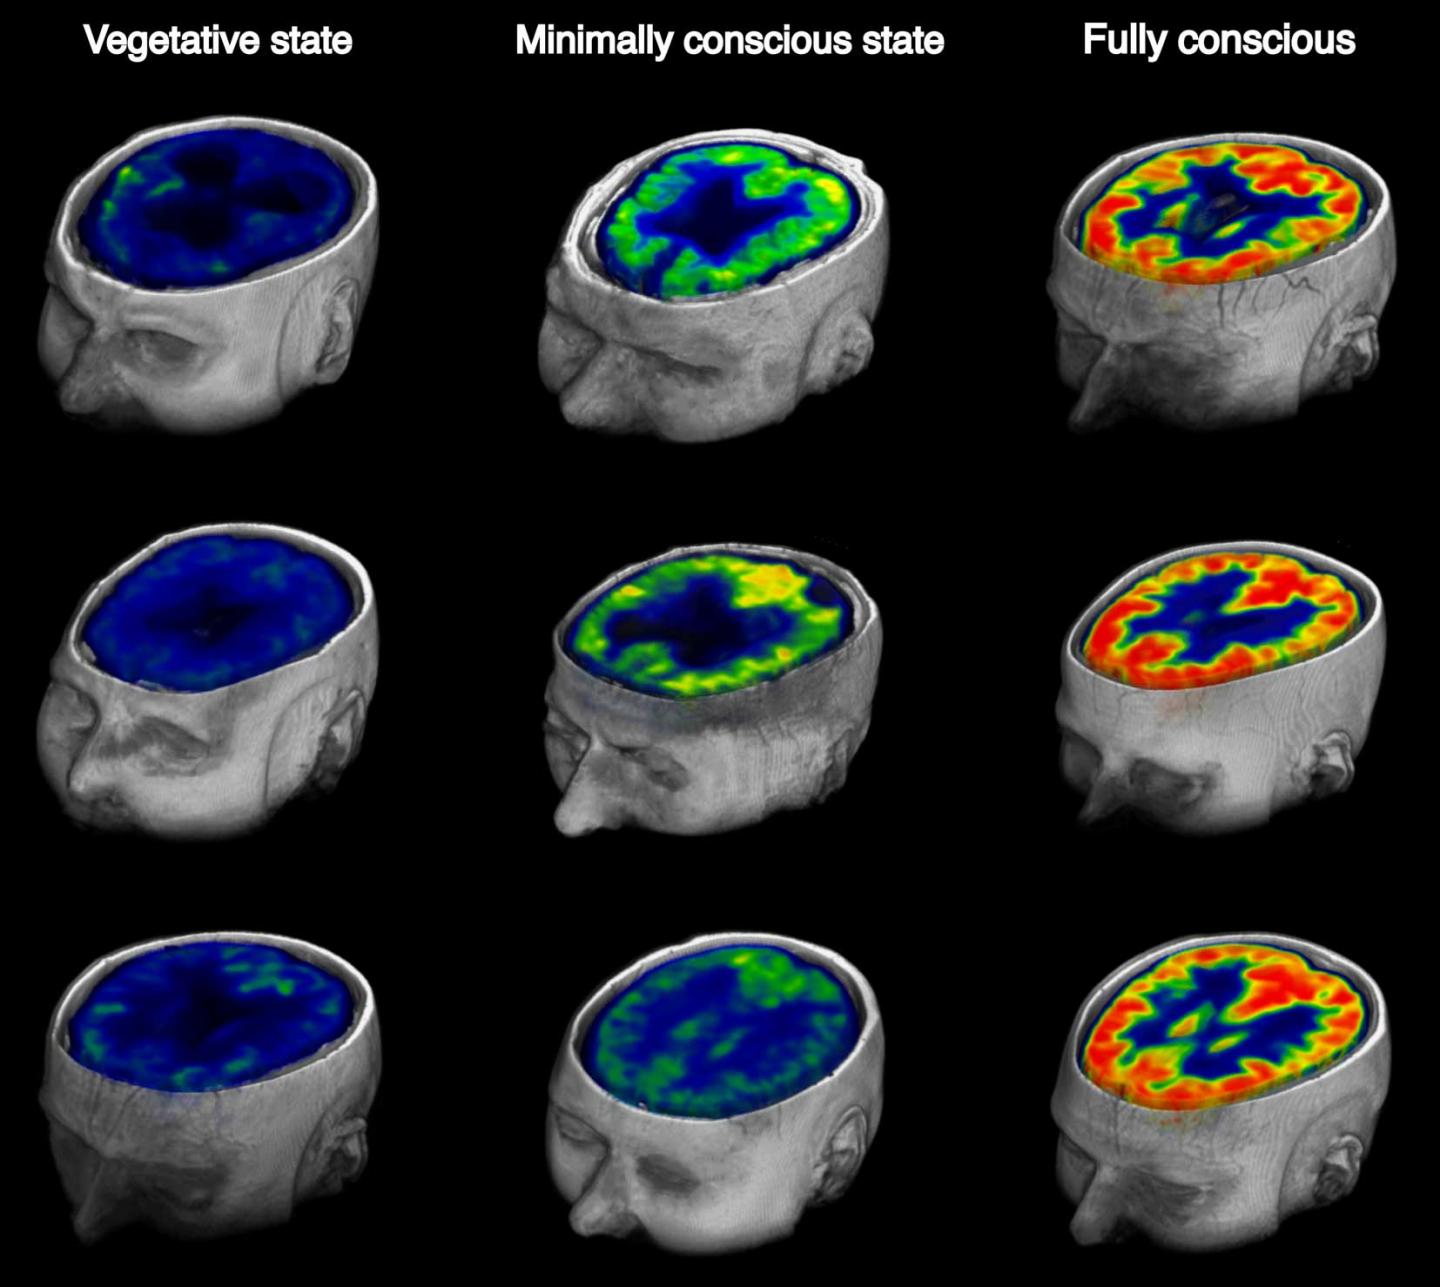 FDG-PET image of healthy and brains of varying consciousness